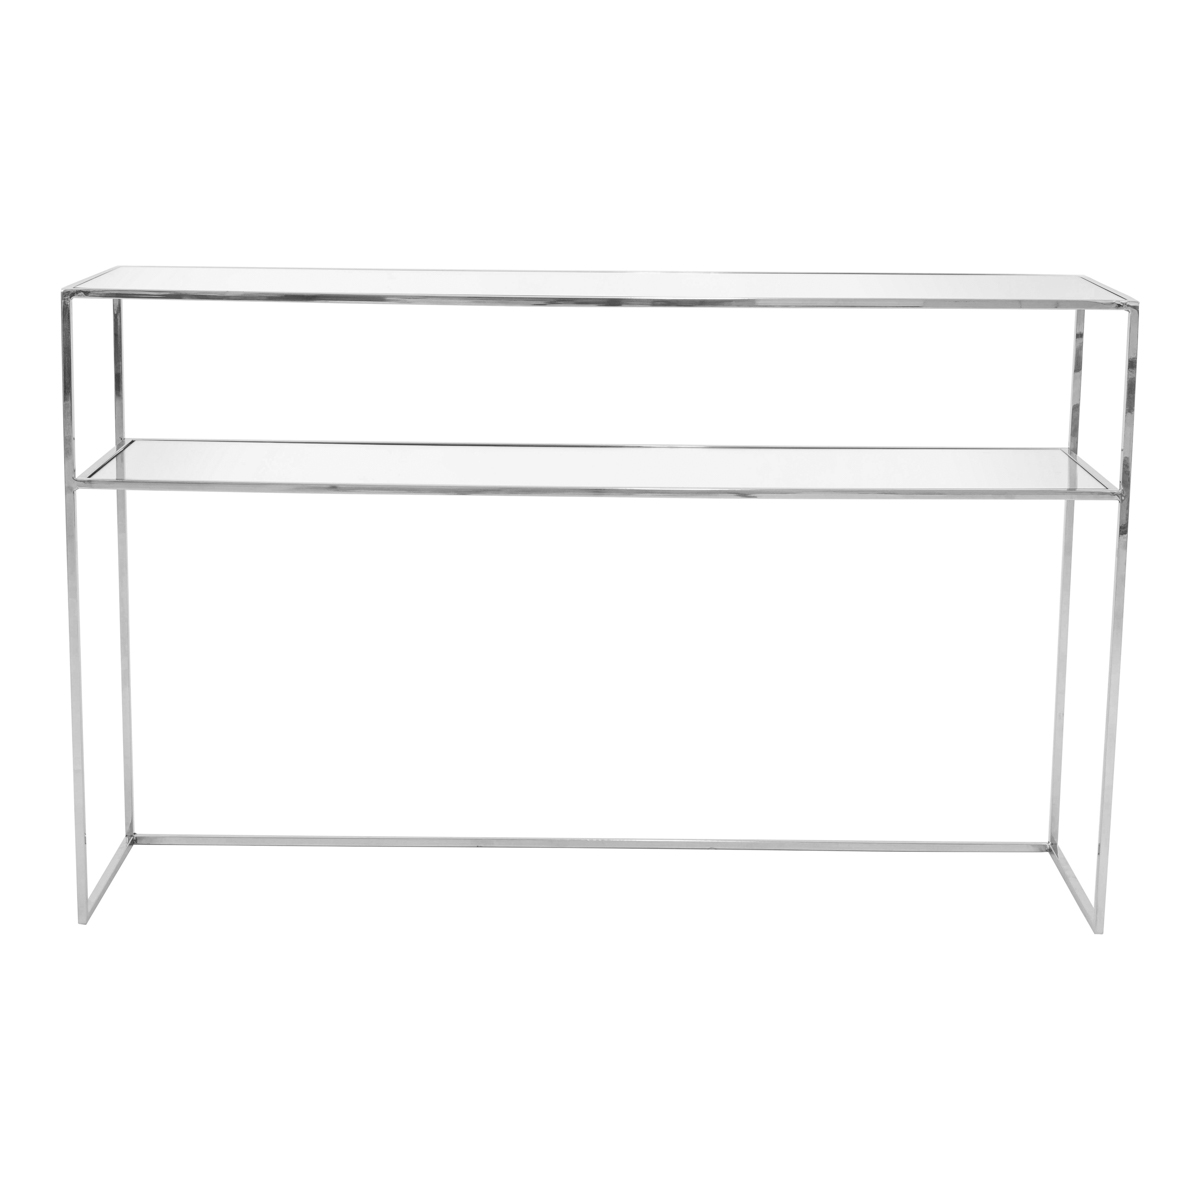 Gazelle Console Table 110 cm – Chrome